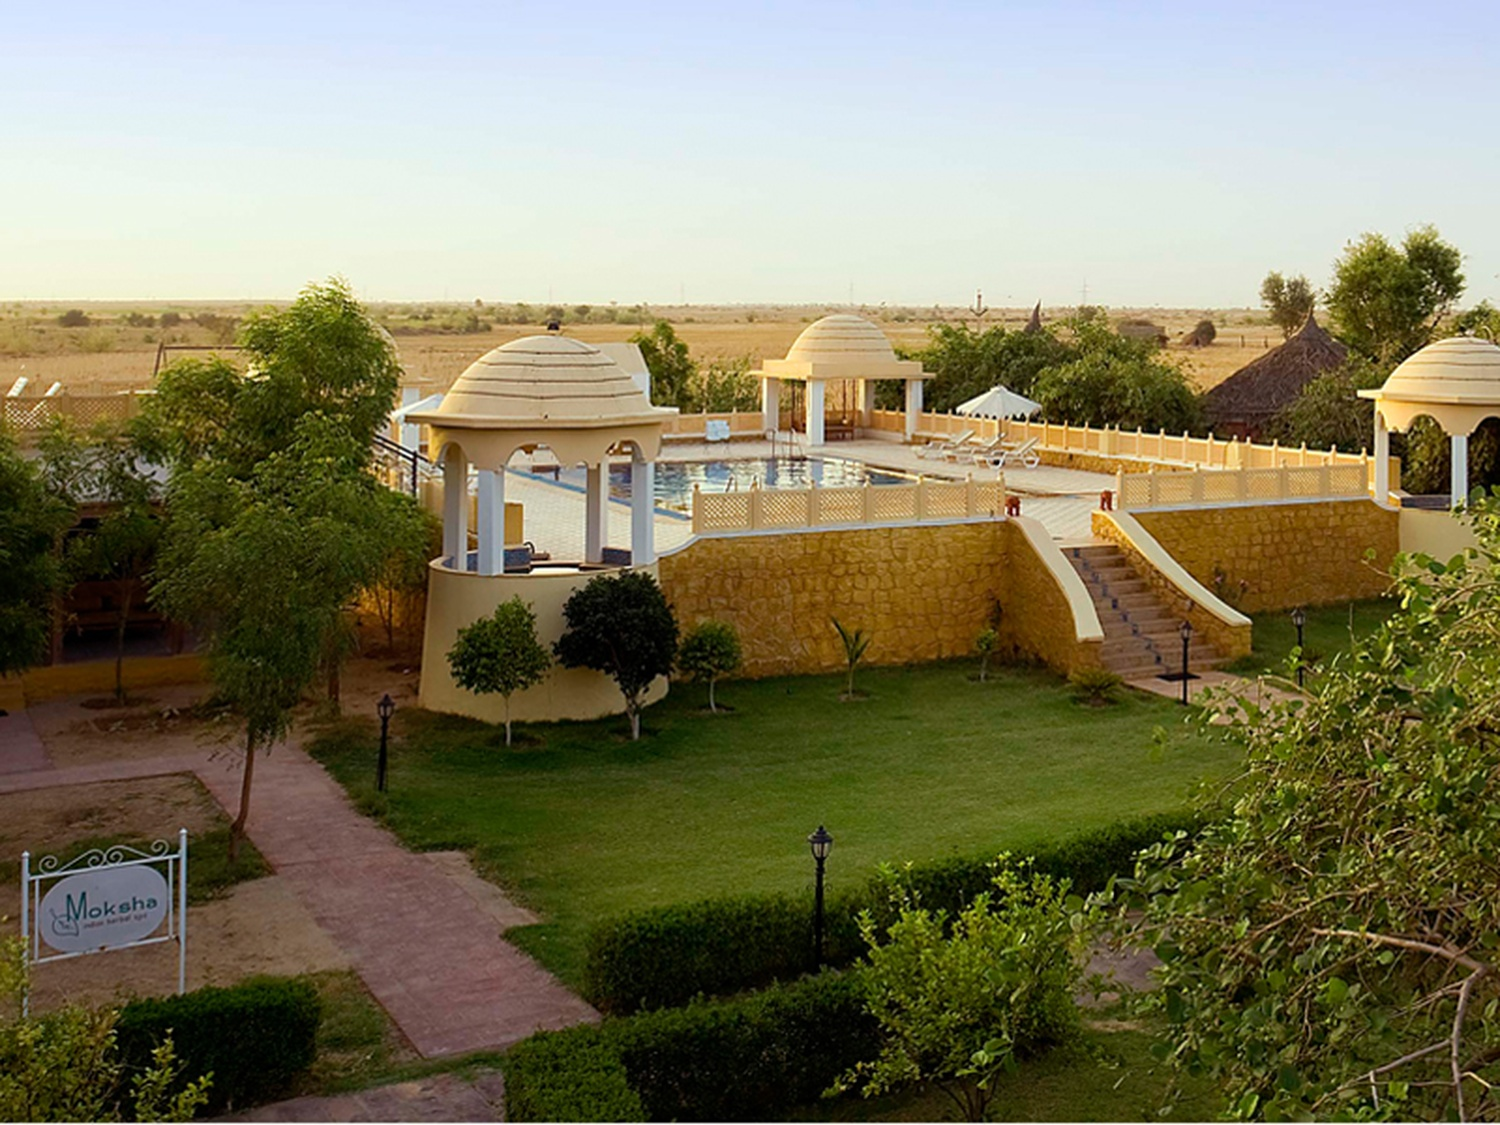 Mirvana Nature Resort Nh 8 Jaisalmer Banquet Hall Wedding Lawn